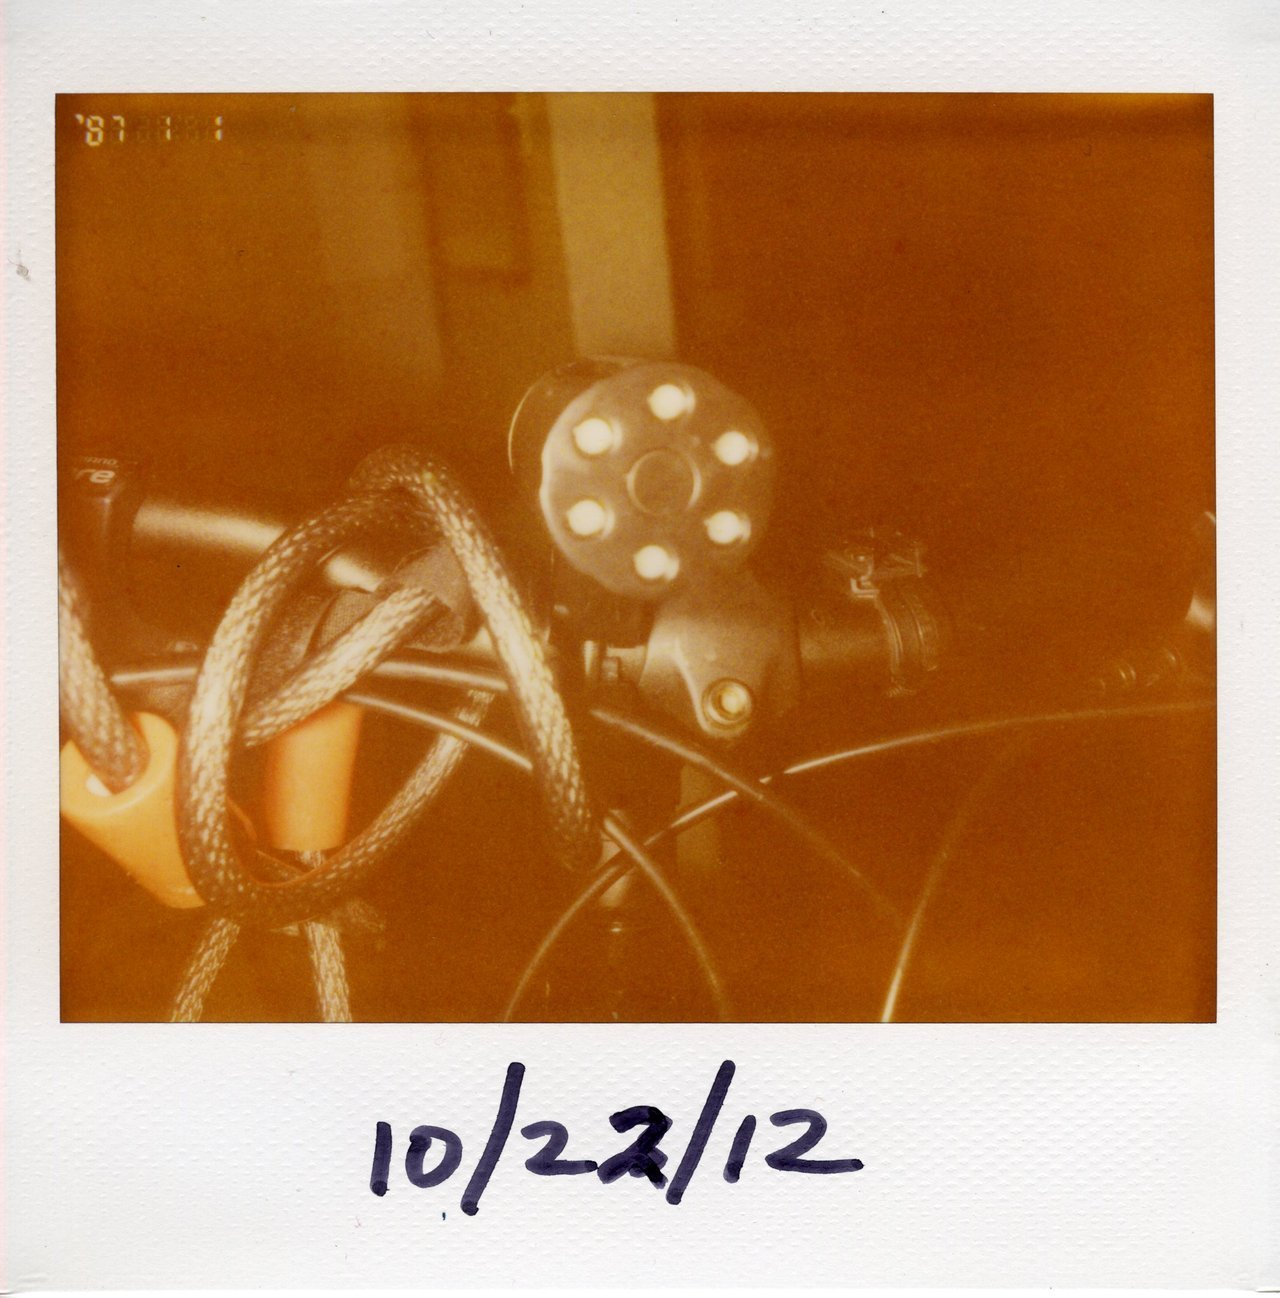 impossibleyear:  Gotham Defender Bike Light Polaroid Spectra ProCam / Expired Polaroid Image Softtone  The first piece of indie hardware I bought on Kickstarter. I'm madly in love with this thing, it's virtually theft proof, brighter and cooler looking than any light I've had before. I lose bike lights like it's my hobby (along with sunglasses, hats and umbrellas) so having this thing mounted to my bike not only keeps me safe, it will save me money in the long run. Check these guys out: http://www.bikegotham.com